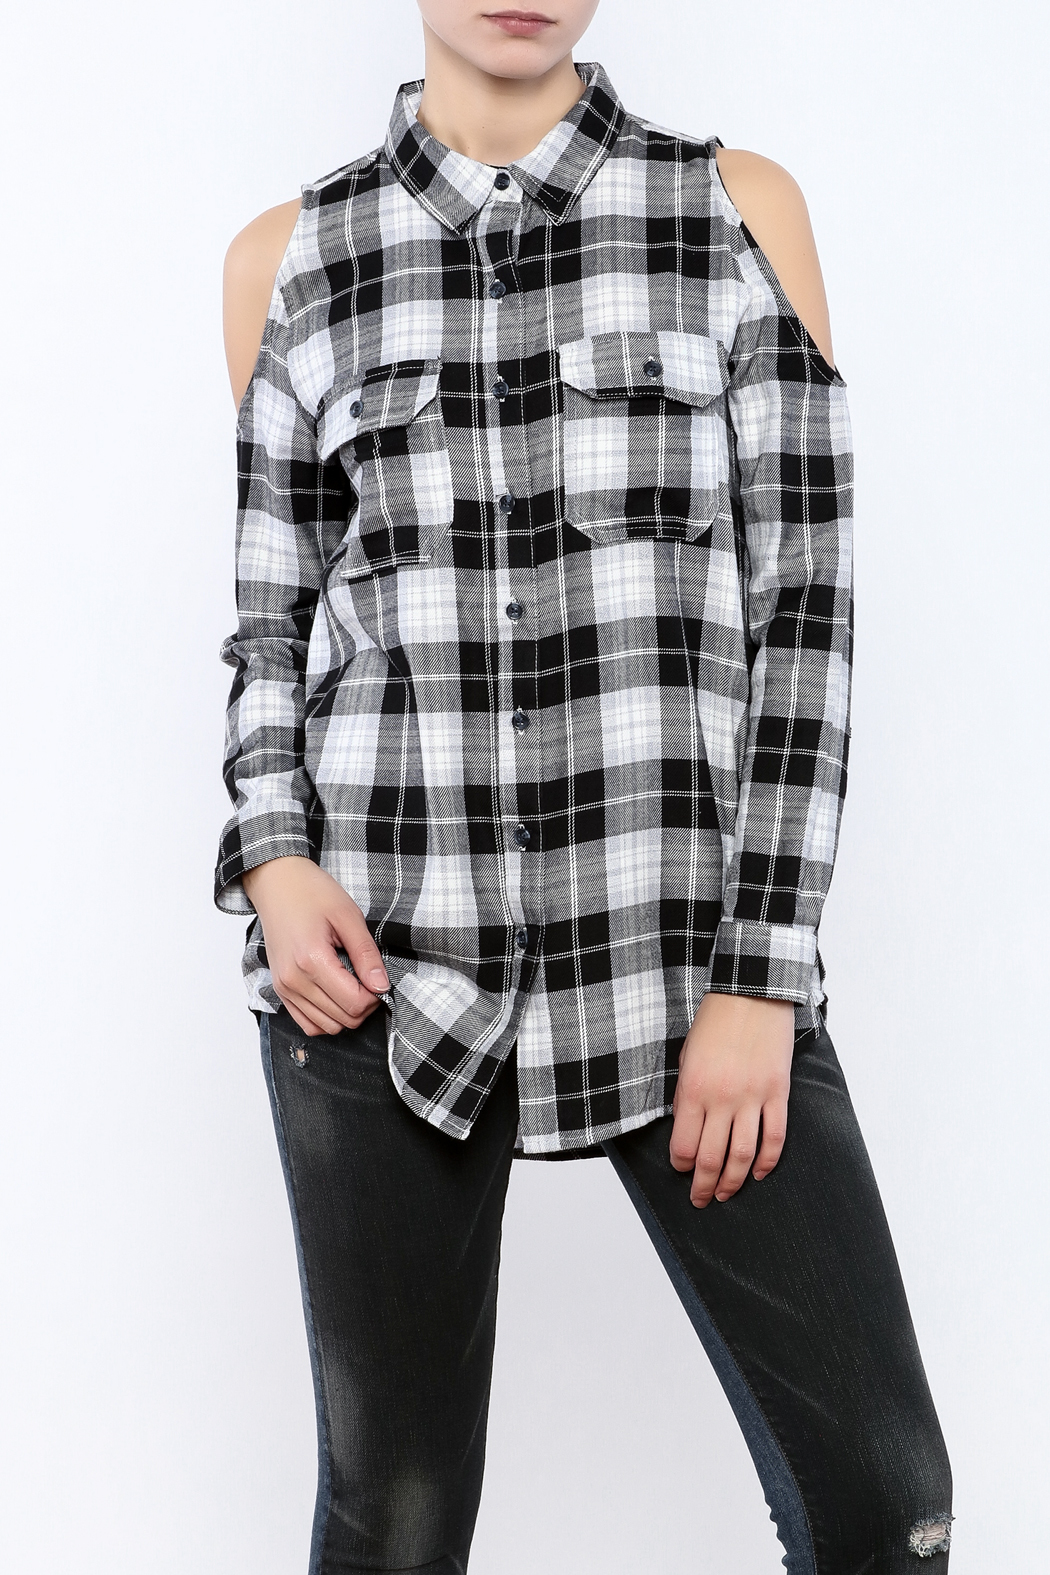 Velvet Heart Finely Cold Shoulder Plaid Top - Main Image